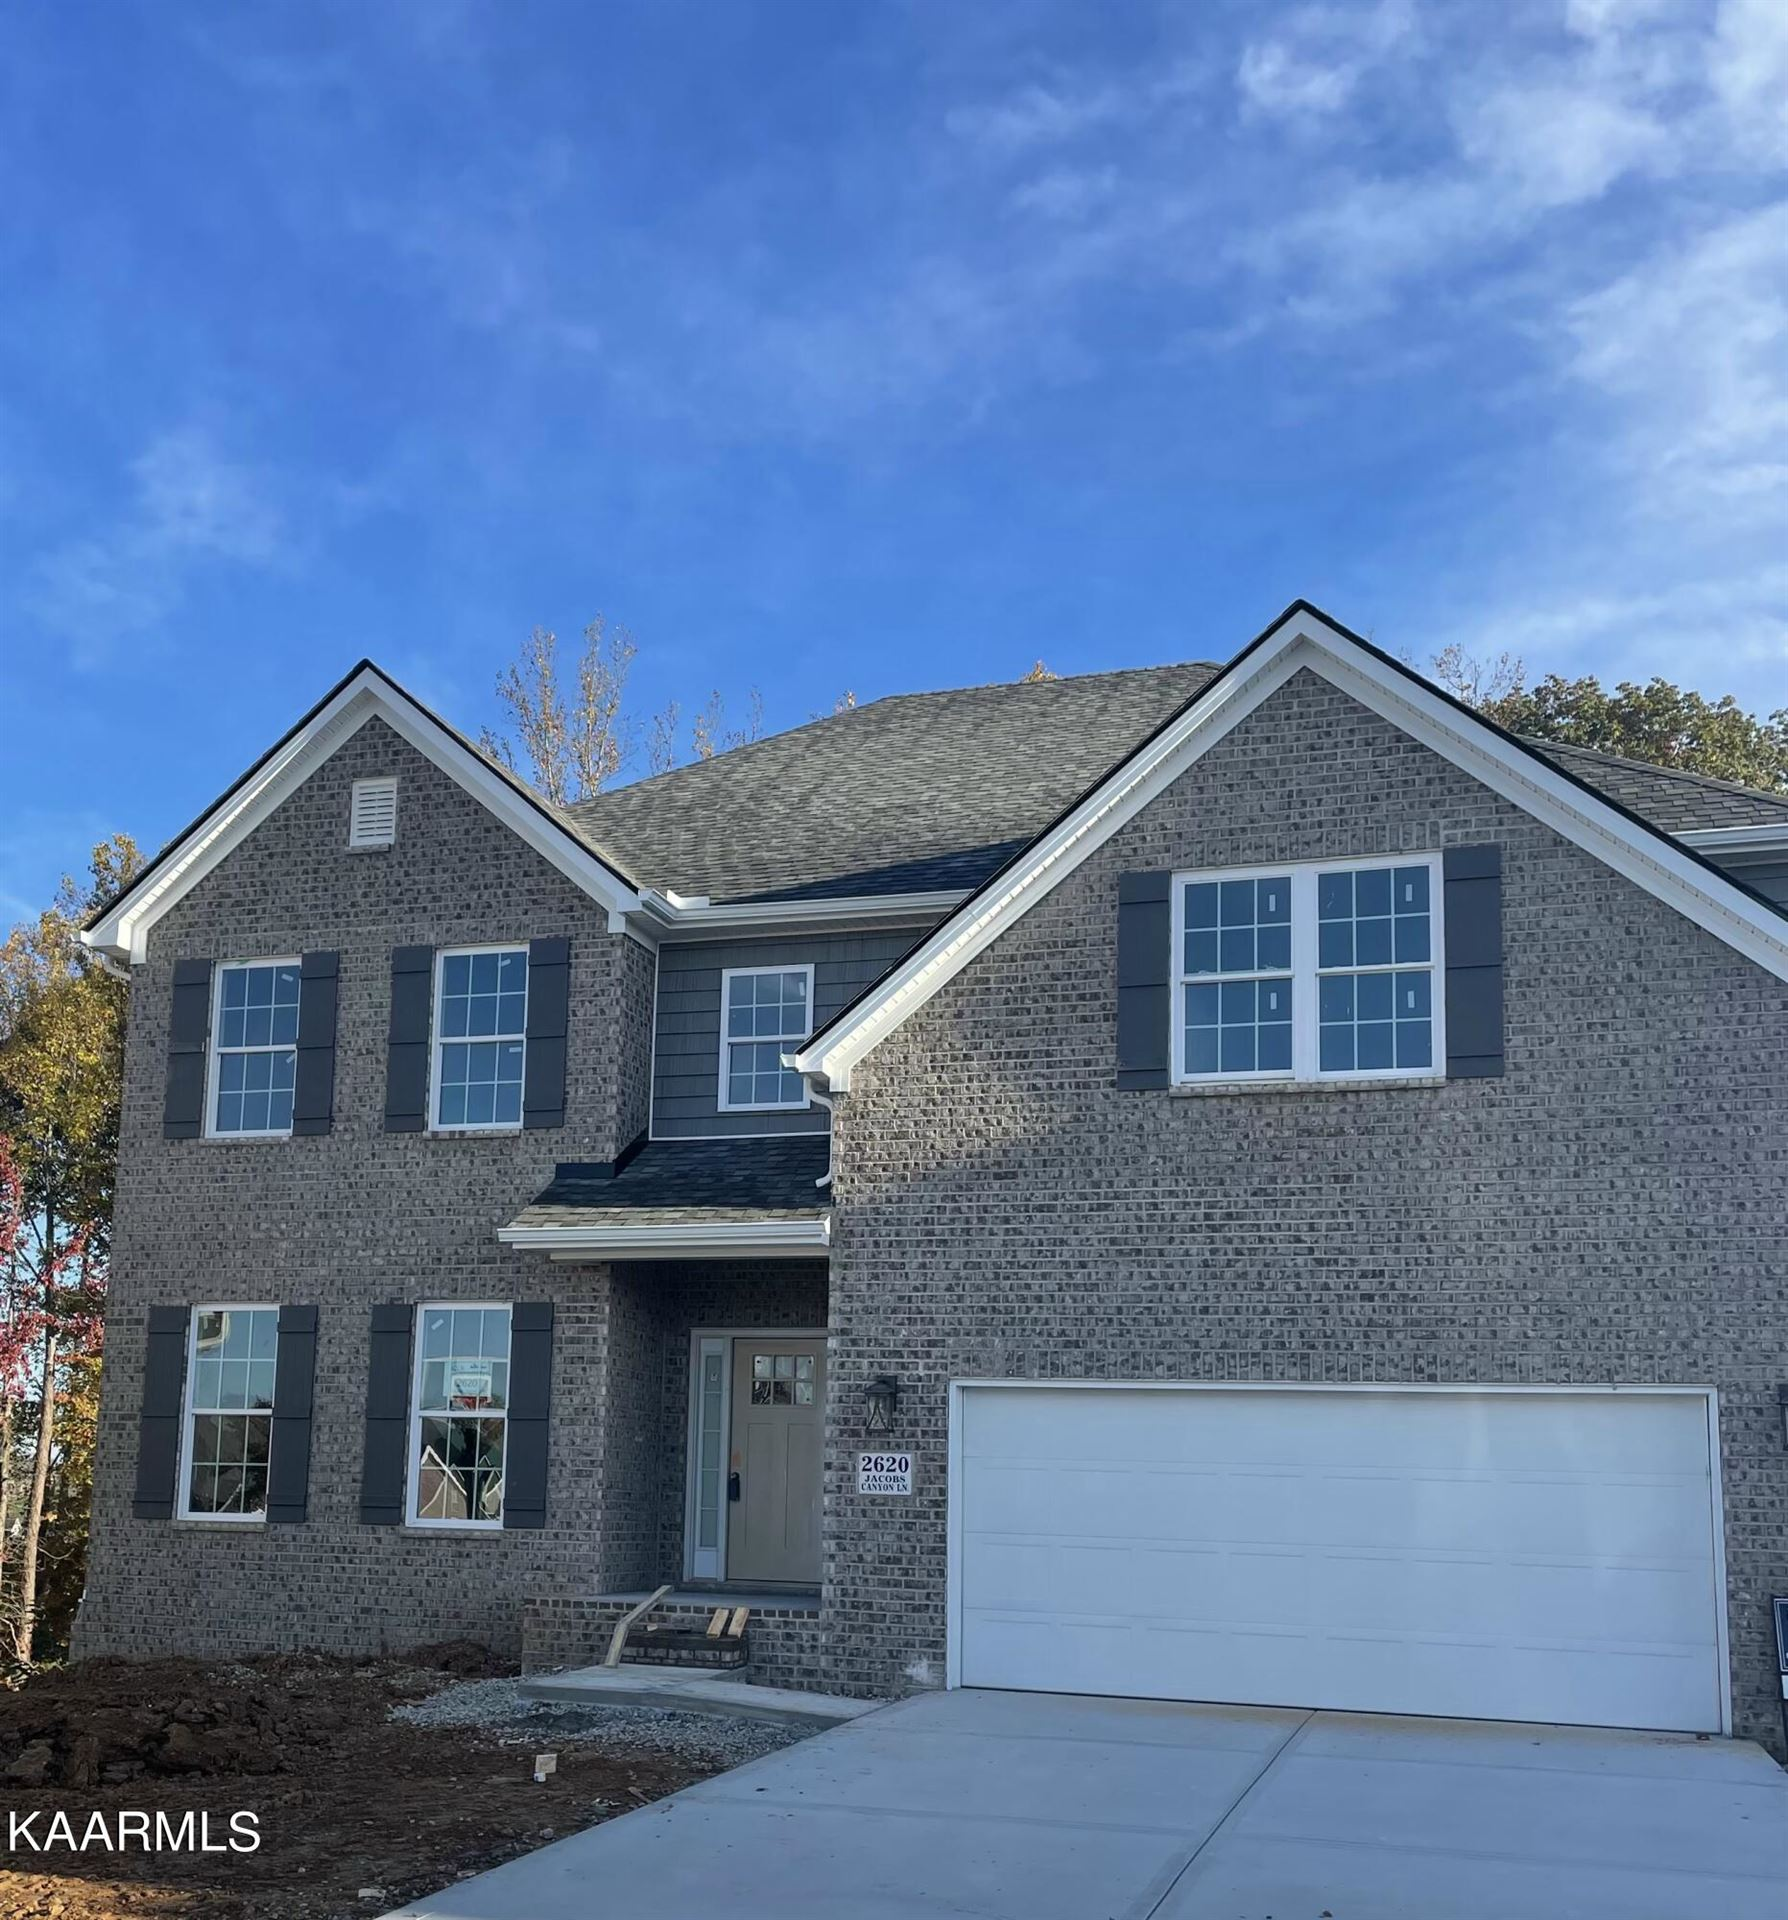 Photo of 2620 Jacobs Canyon Lane, Knoxville, TN 37932 (MLS # 1171706)